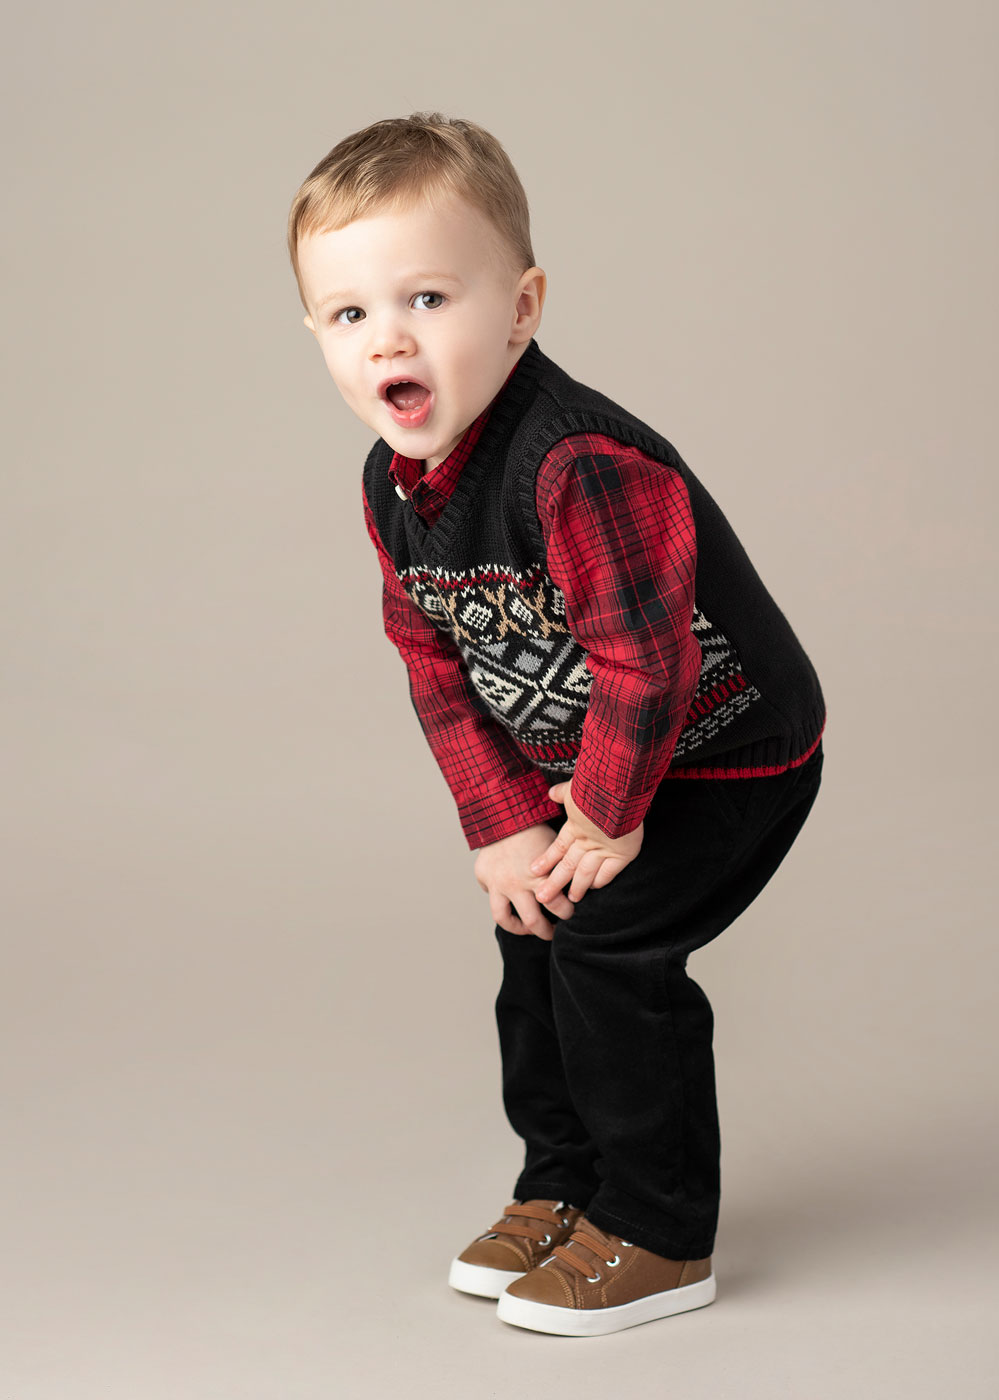 Portrait of toddler boy wearing Christmas outfit